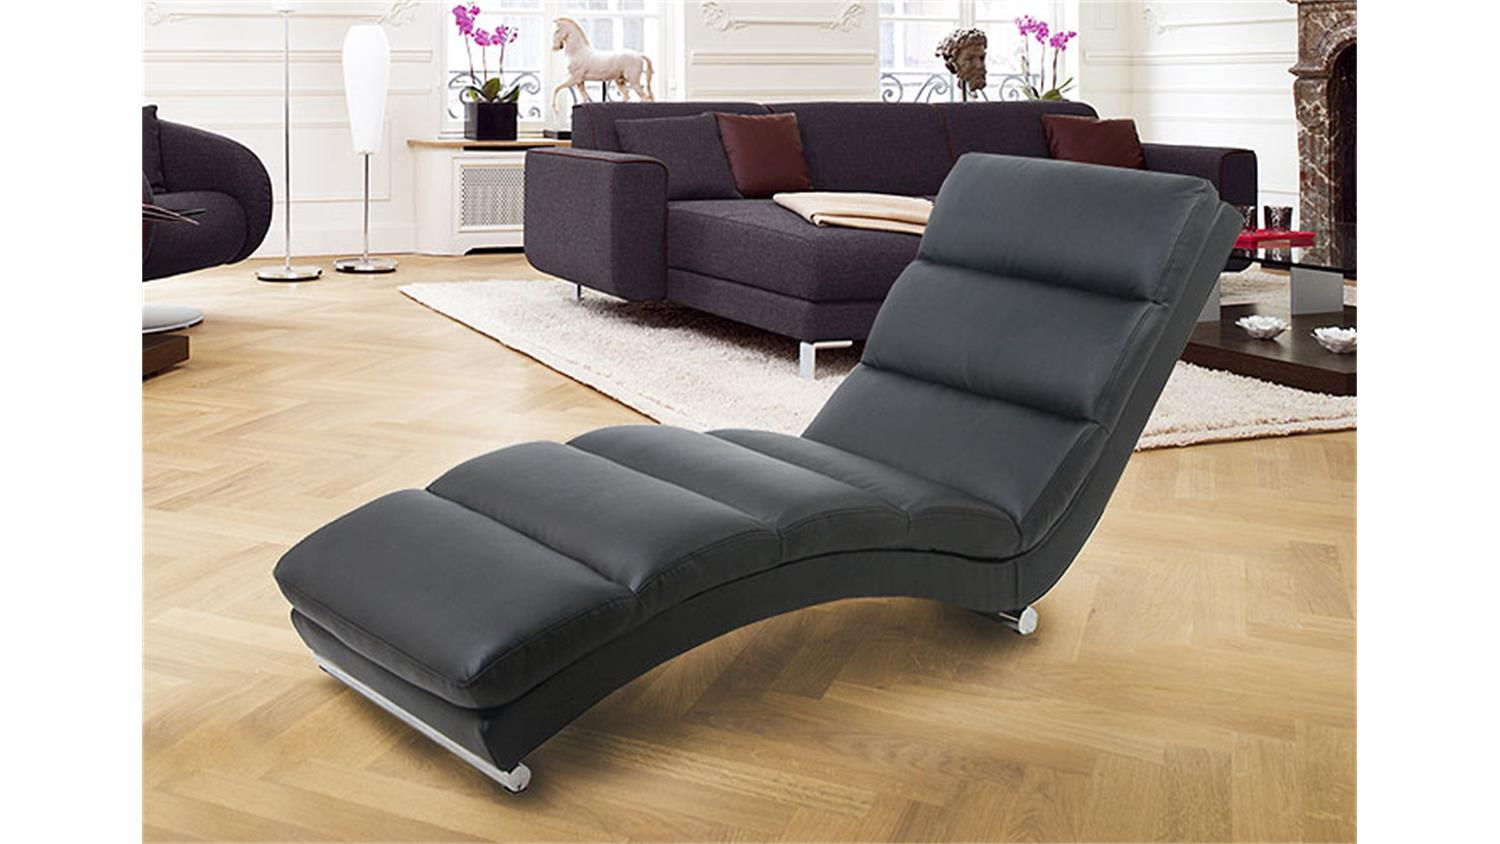 relaxliege fox chaiselongue liege in schwarz und chrom. Black Bedroom Furniture Sets. Home Design Ideas